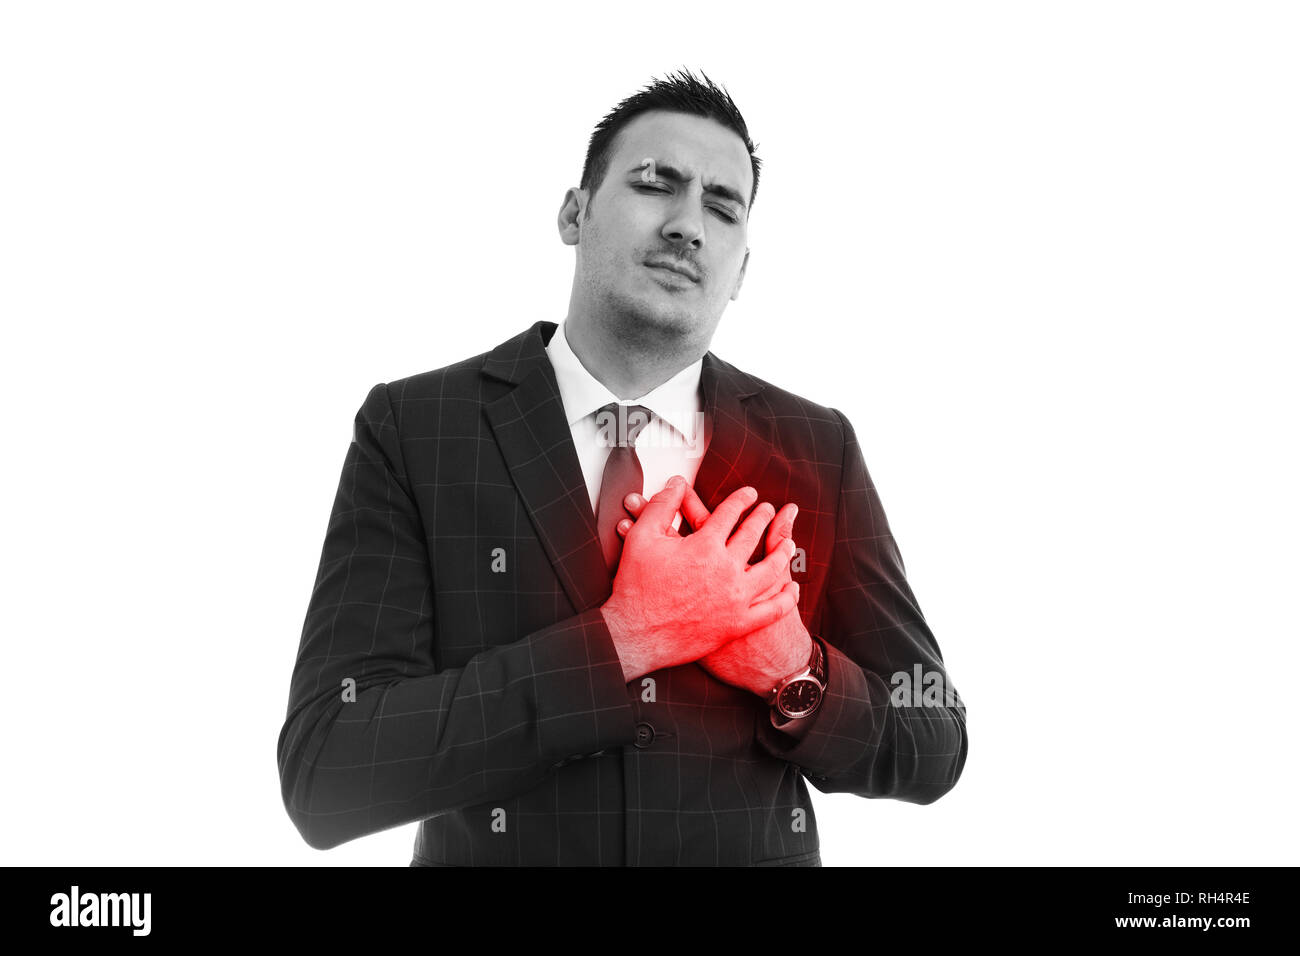 Man wearing suit and tie clutching red heart in black and white image as cardiac health problems concept - Stock Image